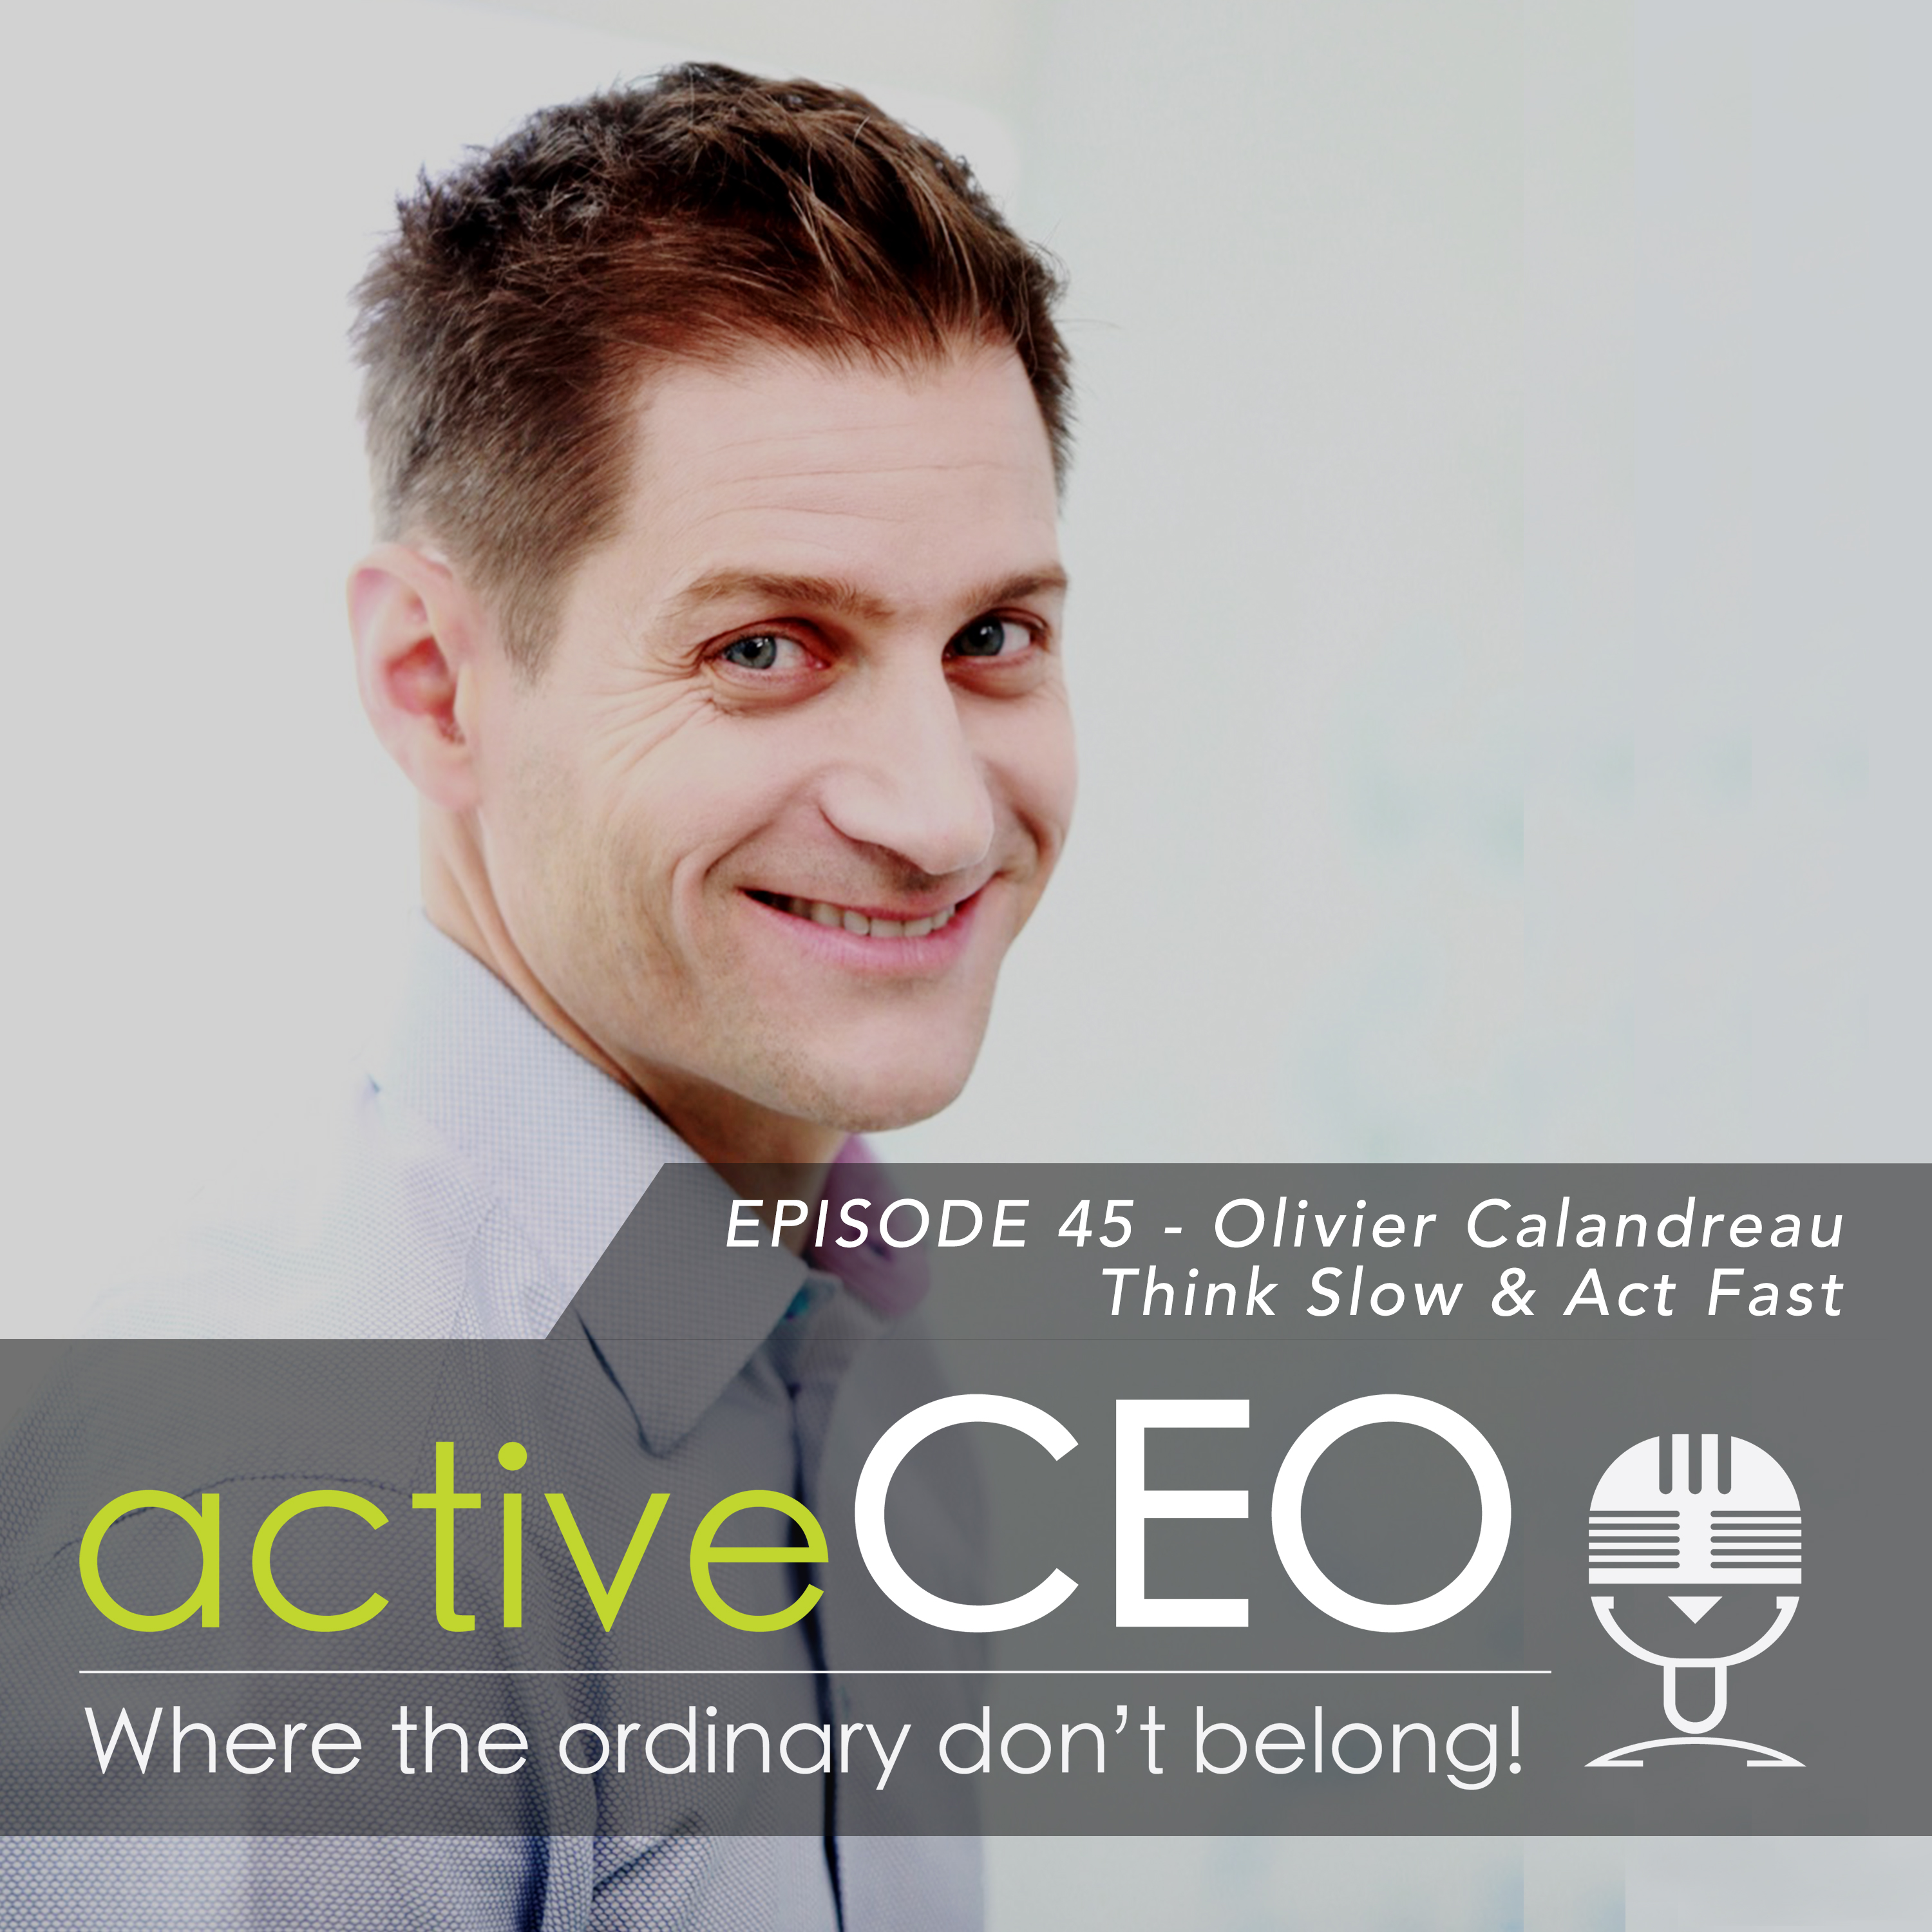 active CEO Podcast Olivier Calandreau (BNP Parabis Cardif) – Think Slow & Act Fast